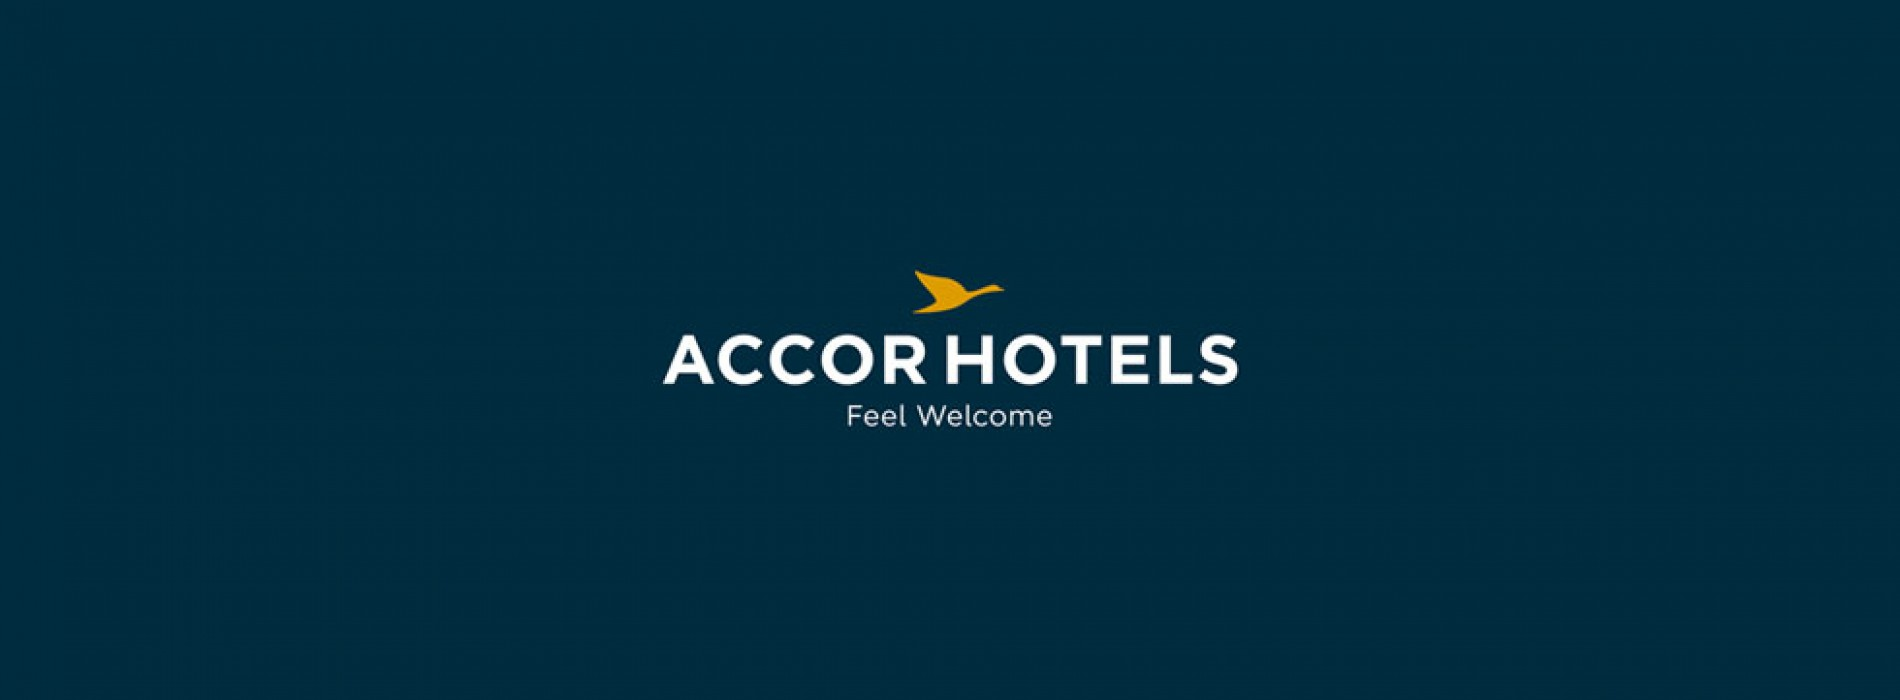 ACCOR HOTELS' EXCLUSIVE HOSPITALITY PARTNERSHIP WITH DELHI DAREDEVILS